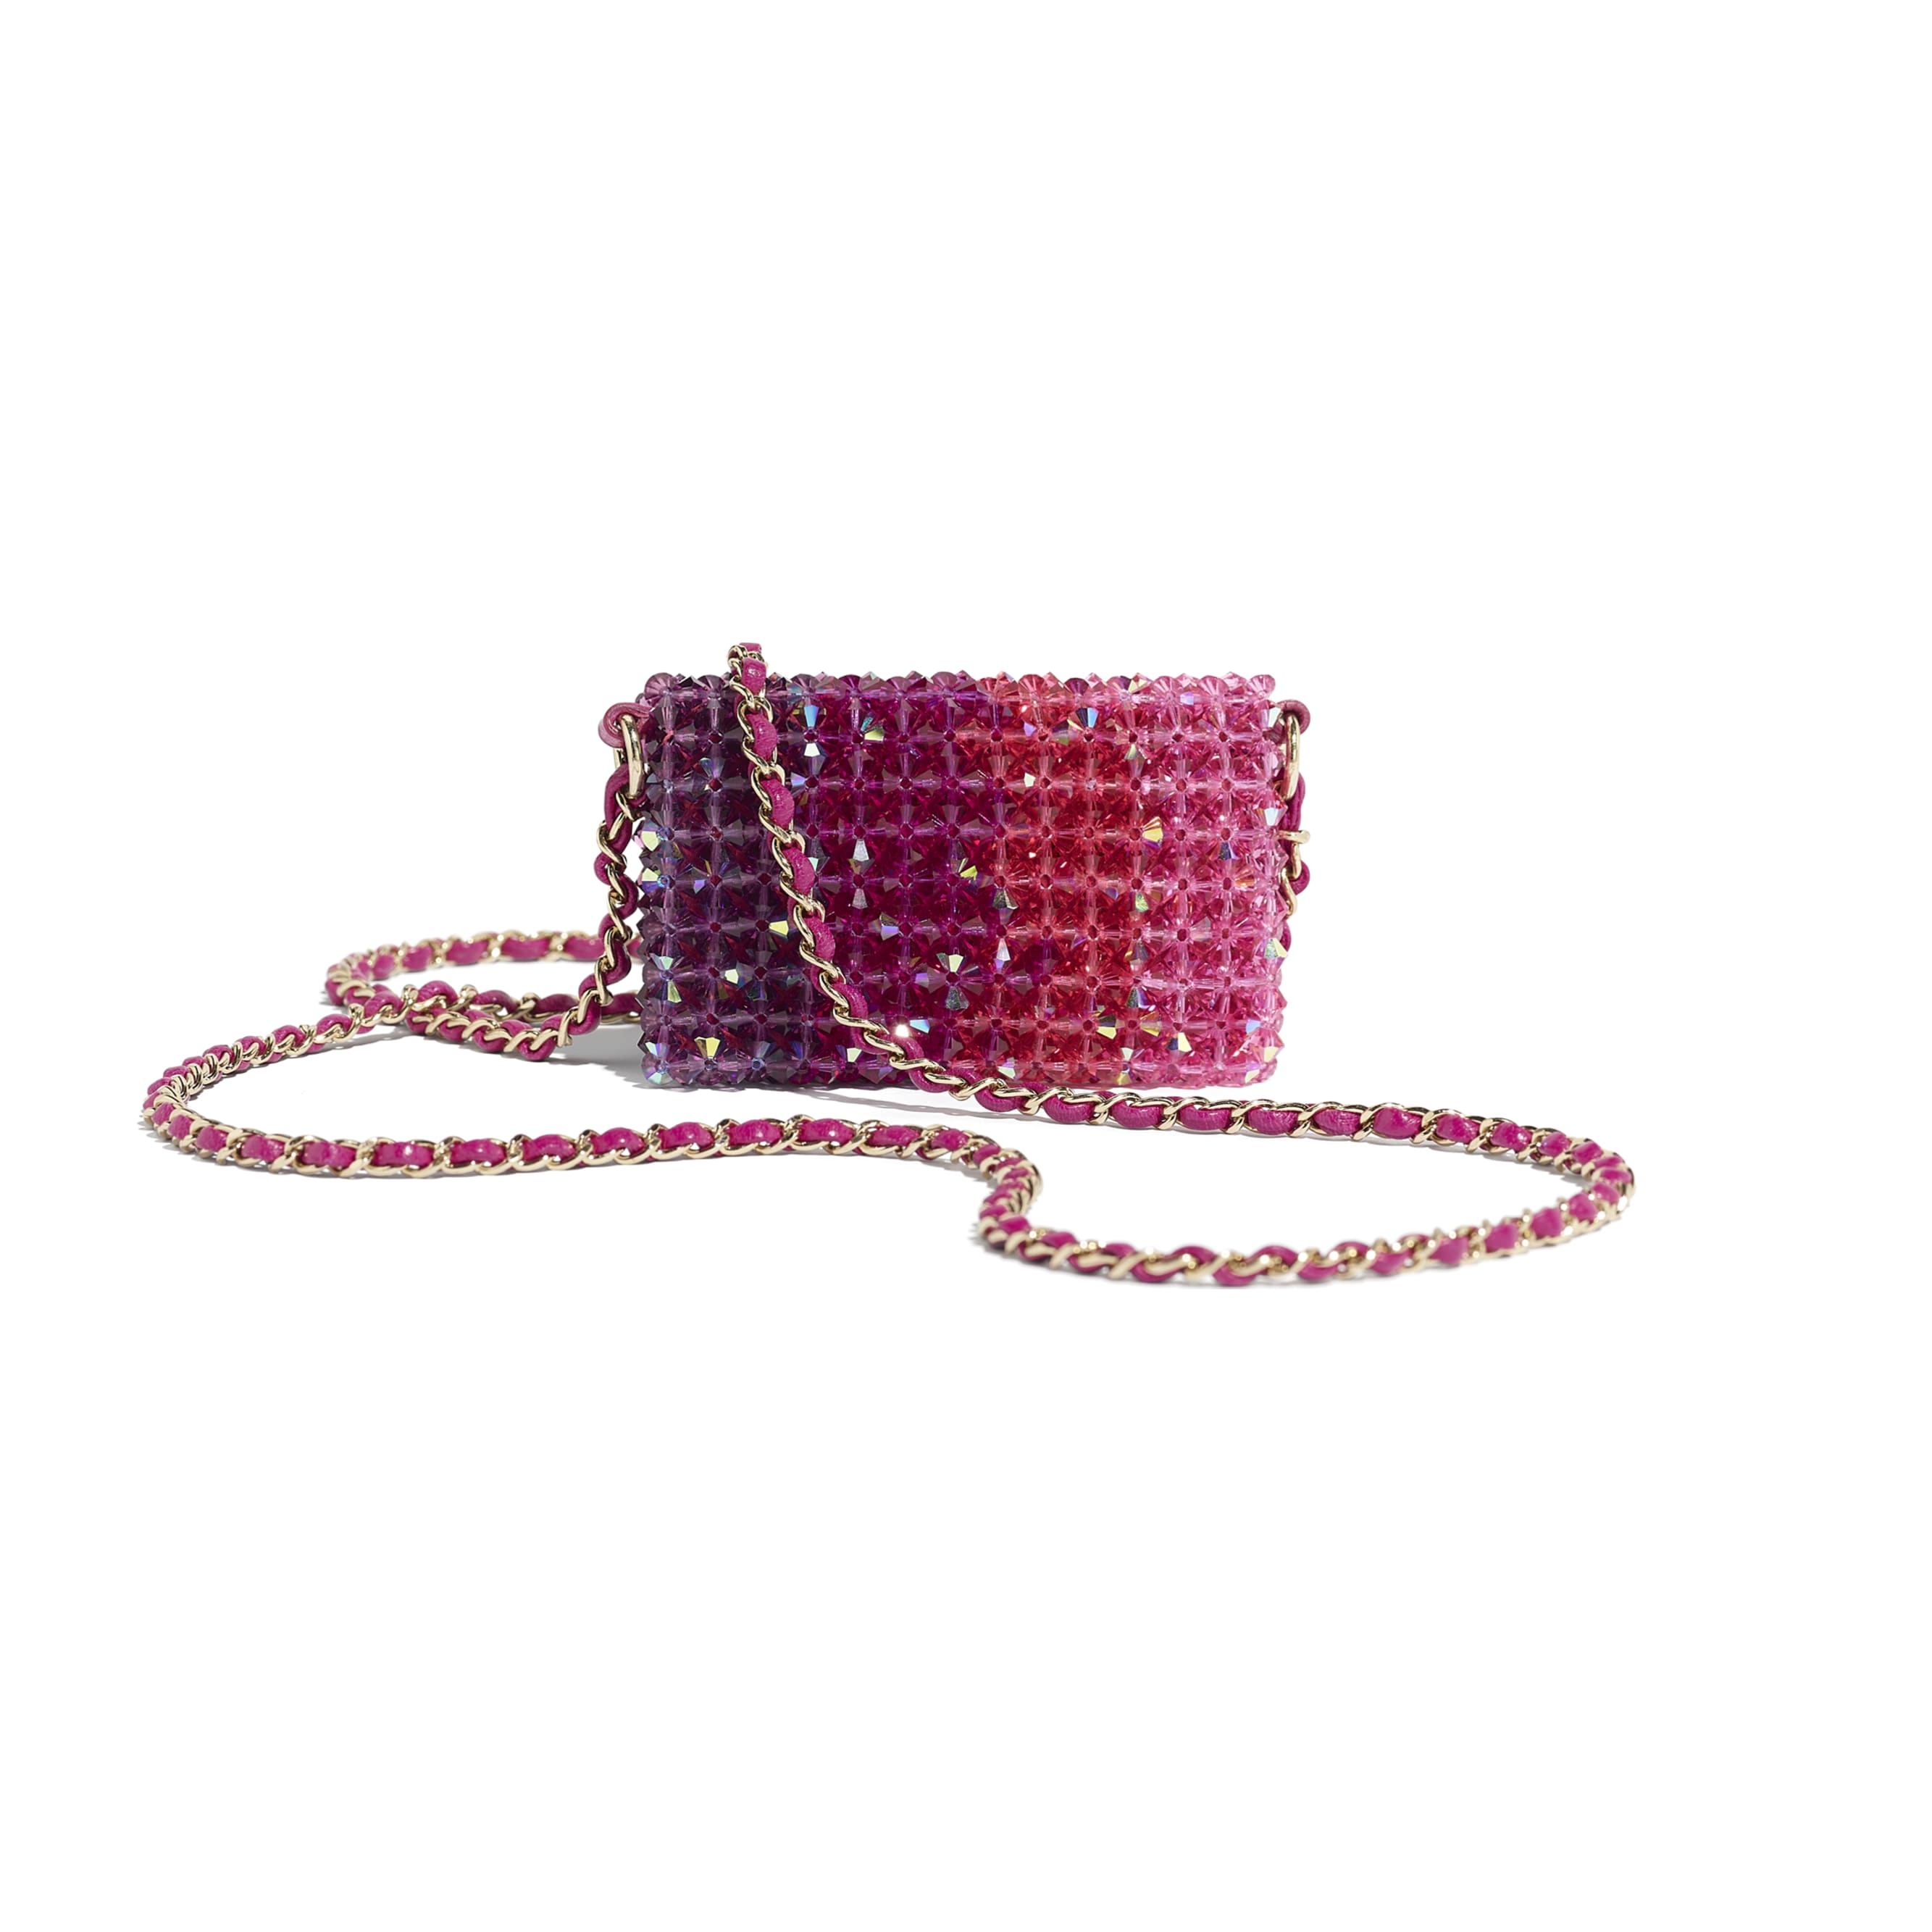 Mini Flap Bag - Fuchsia, Pink & Light Pink - Crystal & Gold-Tone Metal - Alternative view - see standard sized version